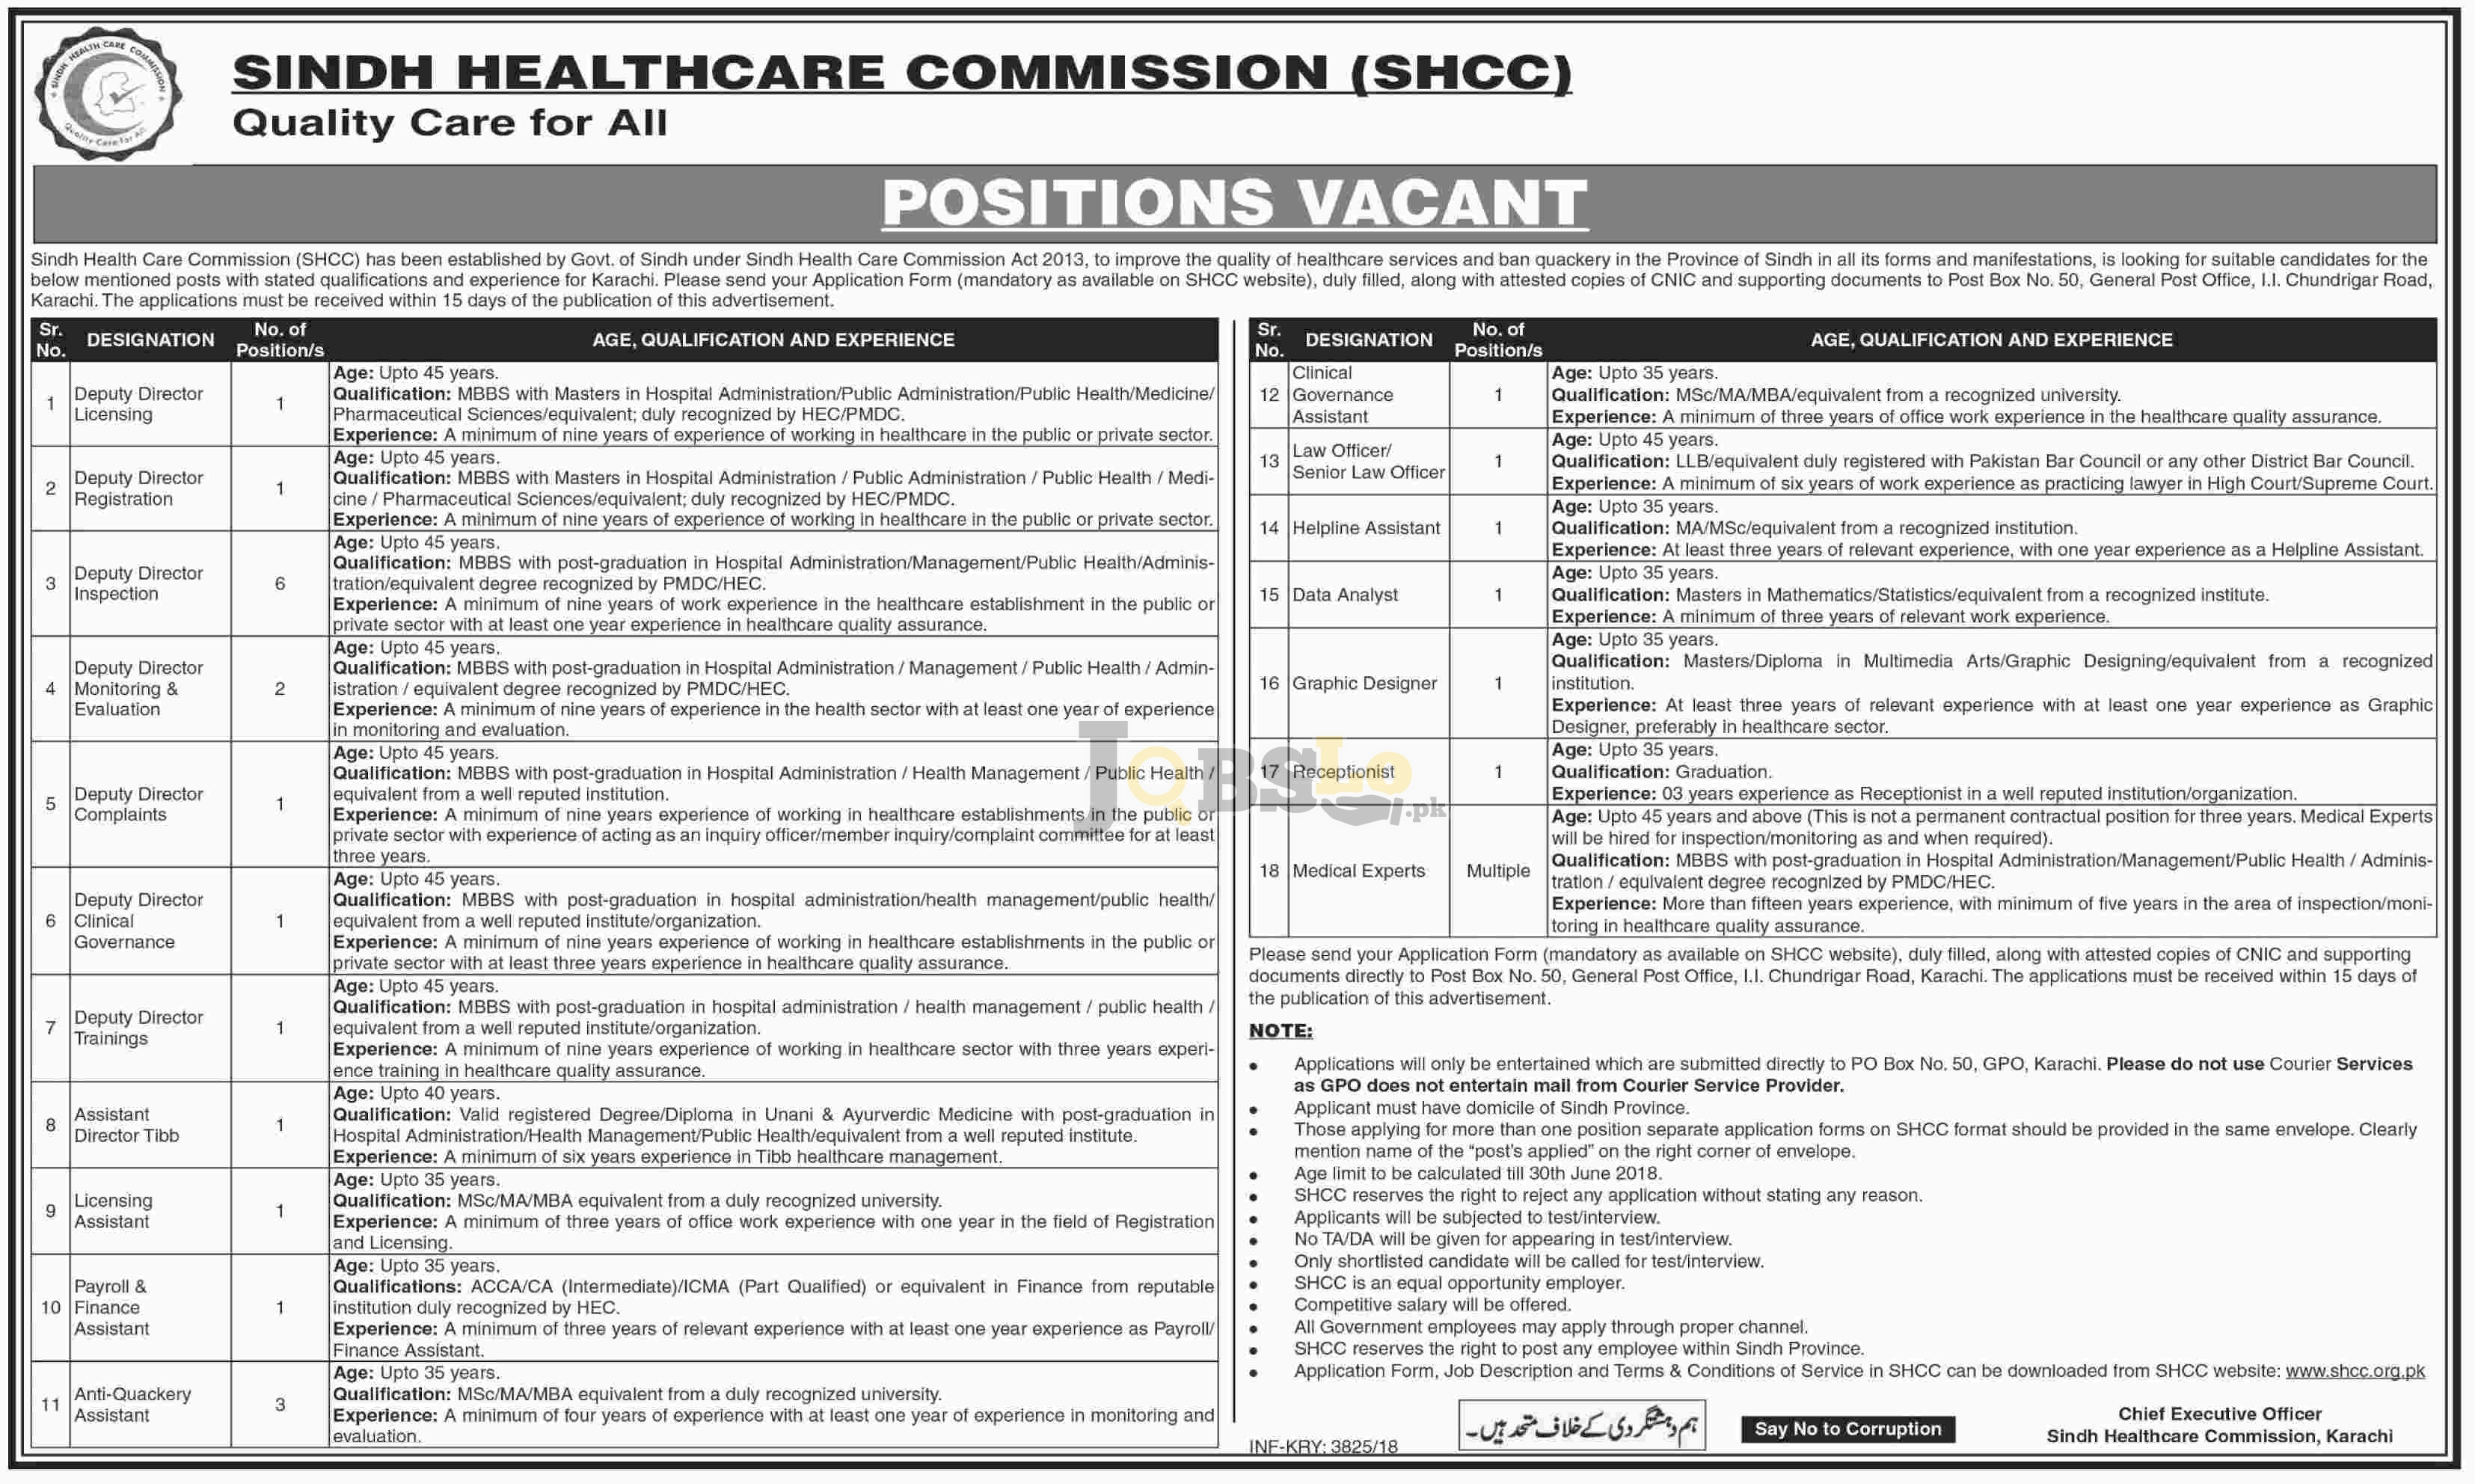 Sindh Healthcare Commission SHCC Jobs 2018 in Pakistan Latest Vacancies